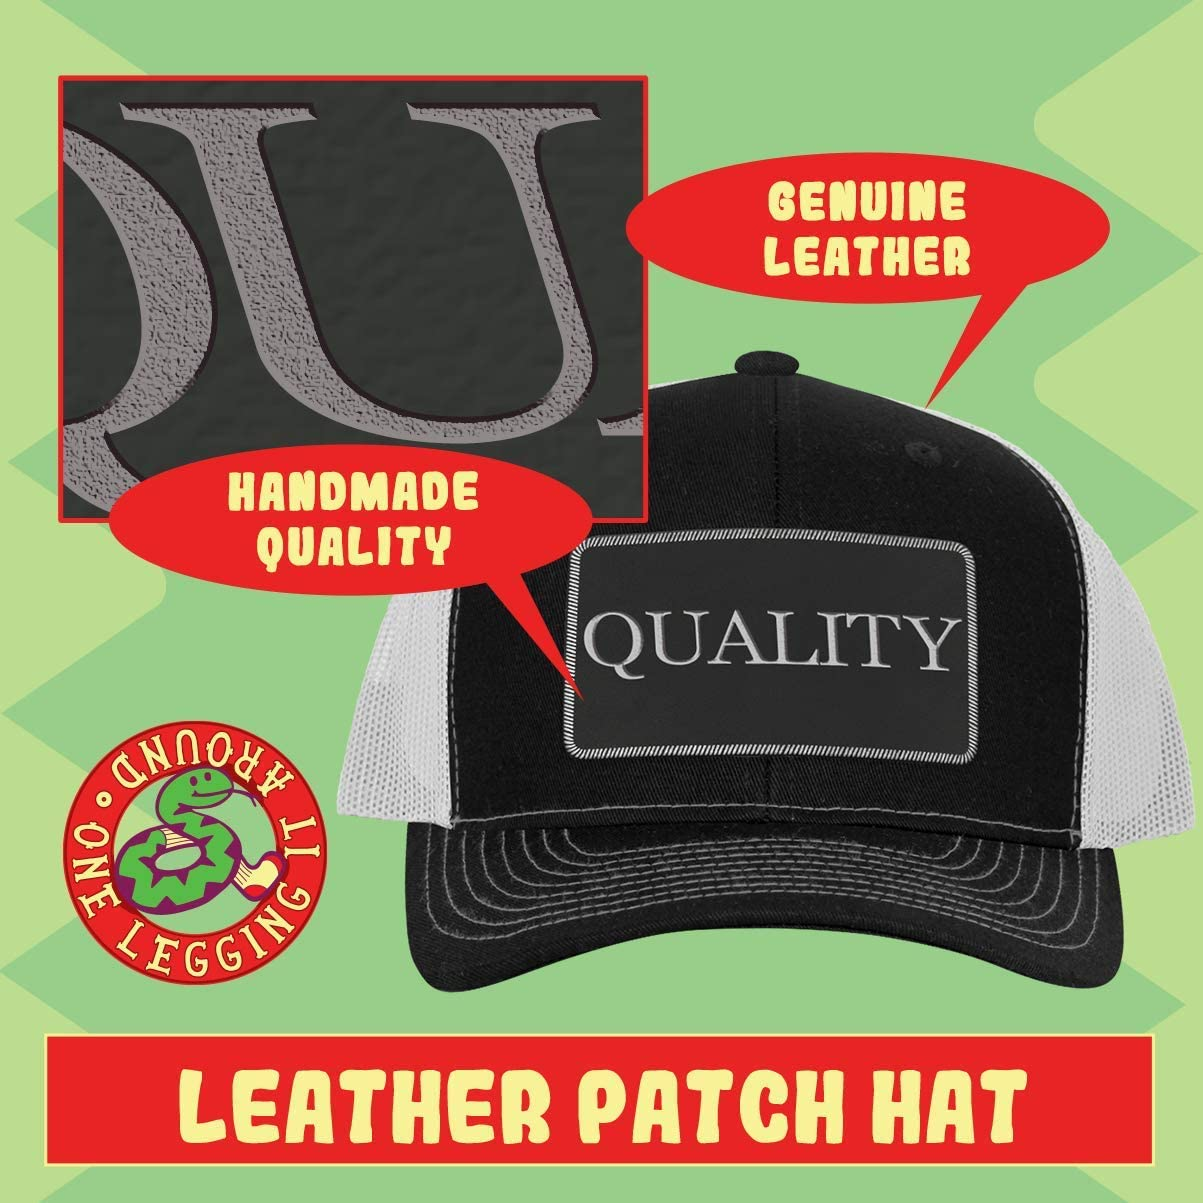 One Legging it Around got Arak - Leather Black Metallic Patch Engraved Trucker Hat 61HI-Hy61vL